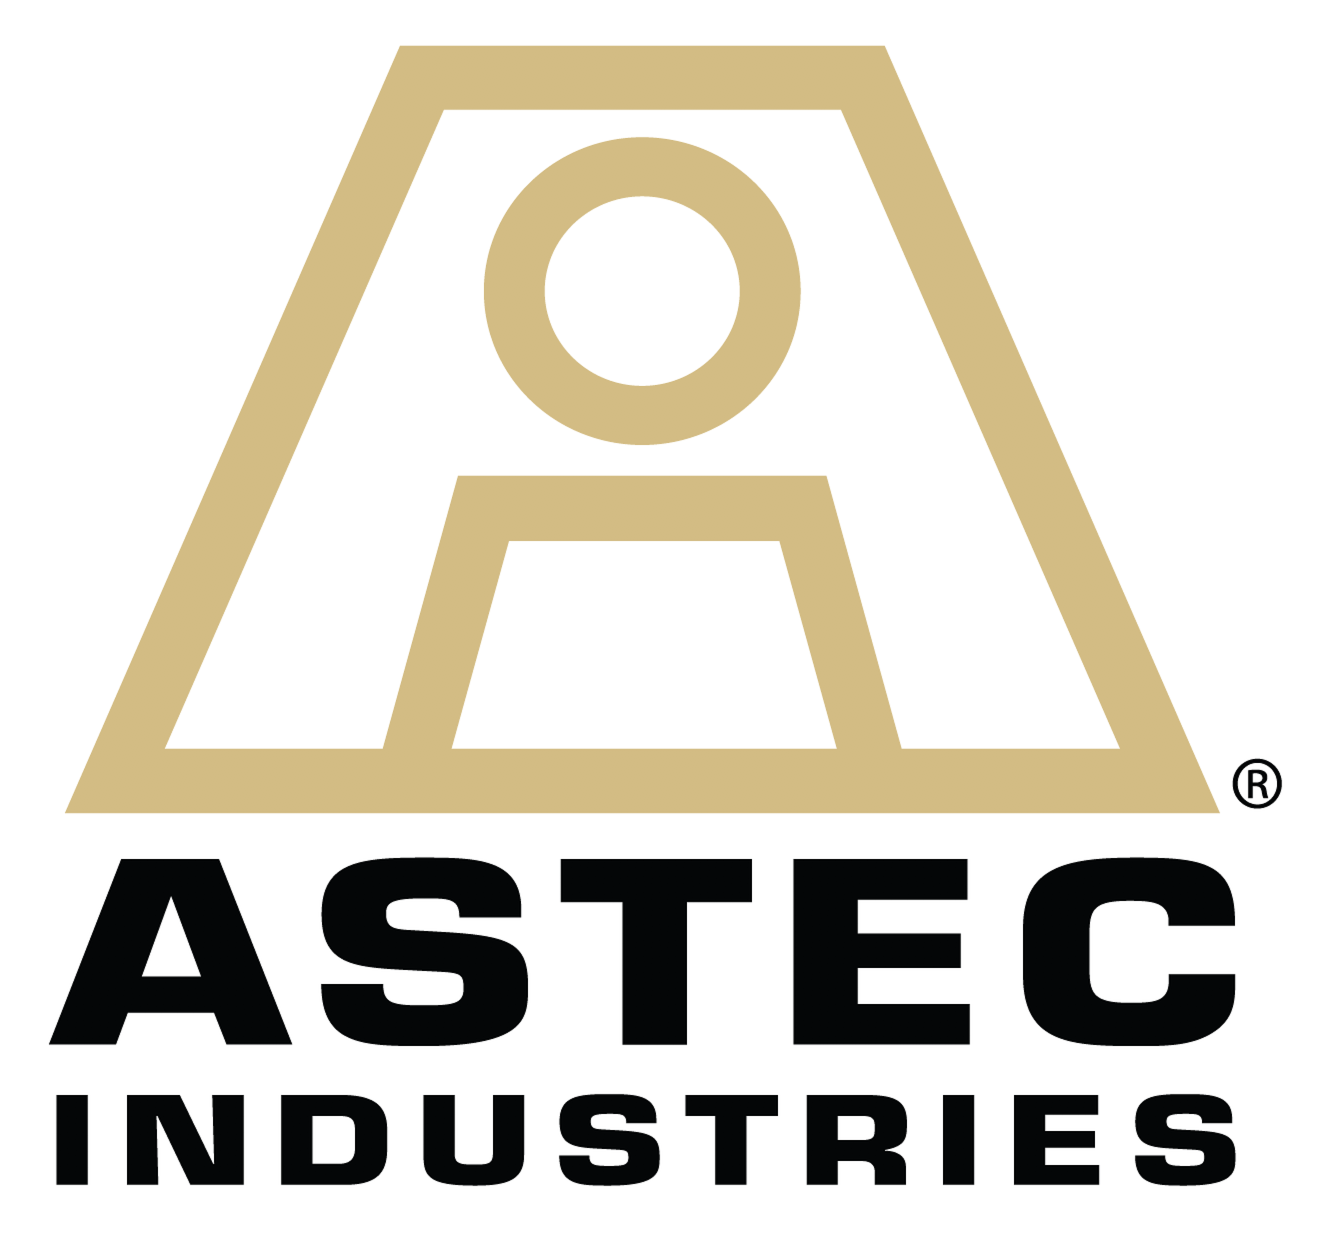 Astec Industries Inc